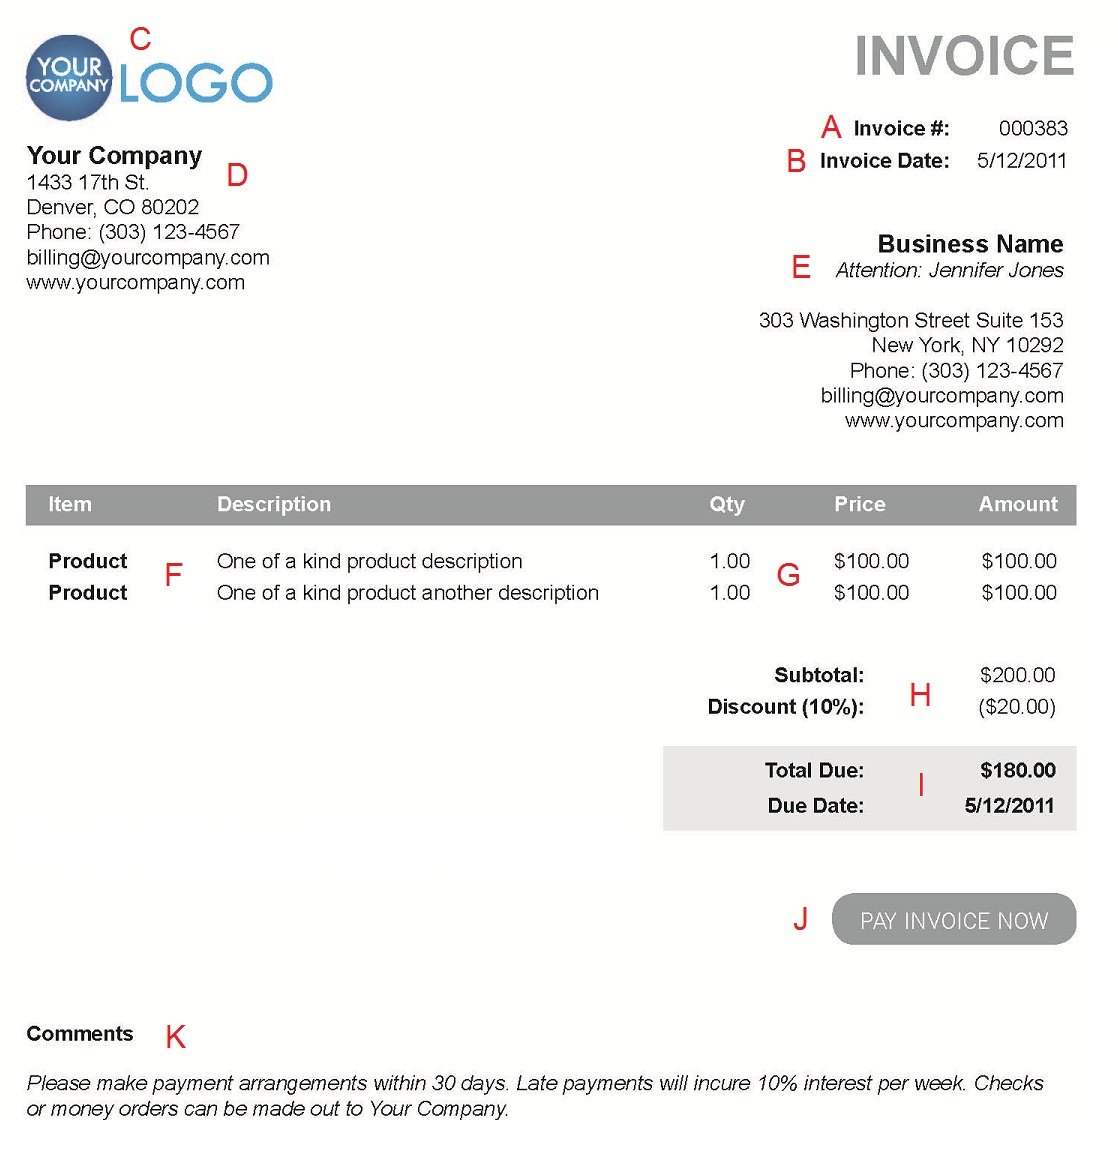 Coolmathgamesus  Personable The  Different Sections Of An Electronic Payment Invoice With Luxury A  With Nice Invoice Template Creator Also Free Invoice Excel Template In Addition Nissan Rogue Sv  Invoice Price And Tax Invoice Template Word As Well As Quote And Invoice Software Additionally Invoice Finance Uk From Paysimplecom With Coolmathgamesus  Luxury The  Different Sections Of An Electronic Payment Invoice With Nice A  And Personable Invoice Template Creator Also Free Invoice Excel Template In Addition Nissan Rogue Sv  Invoice Price From Paysimplecom